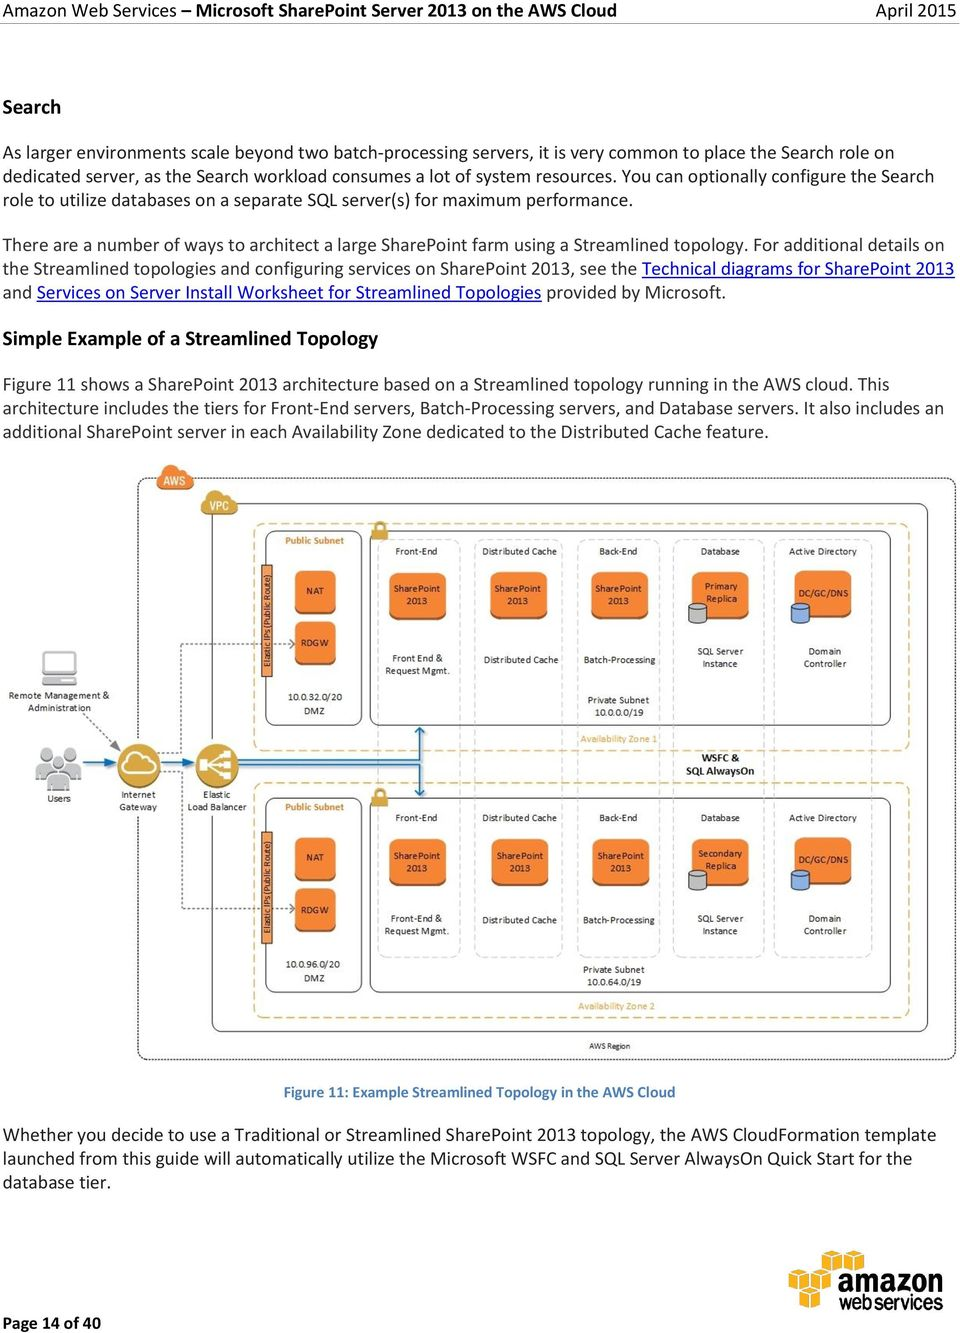 There are a number of ways to architect a large SharePoint farm using a Streamlined topology.